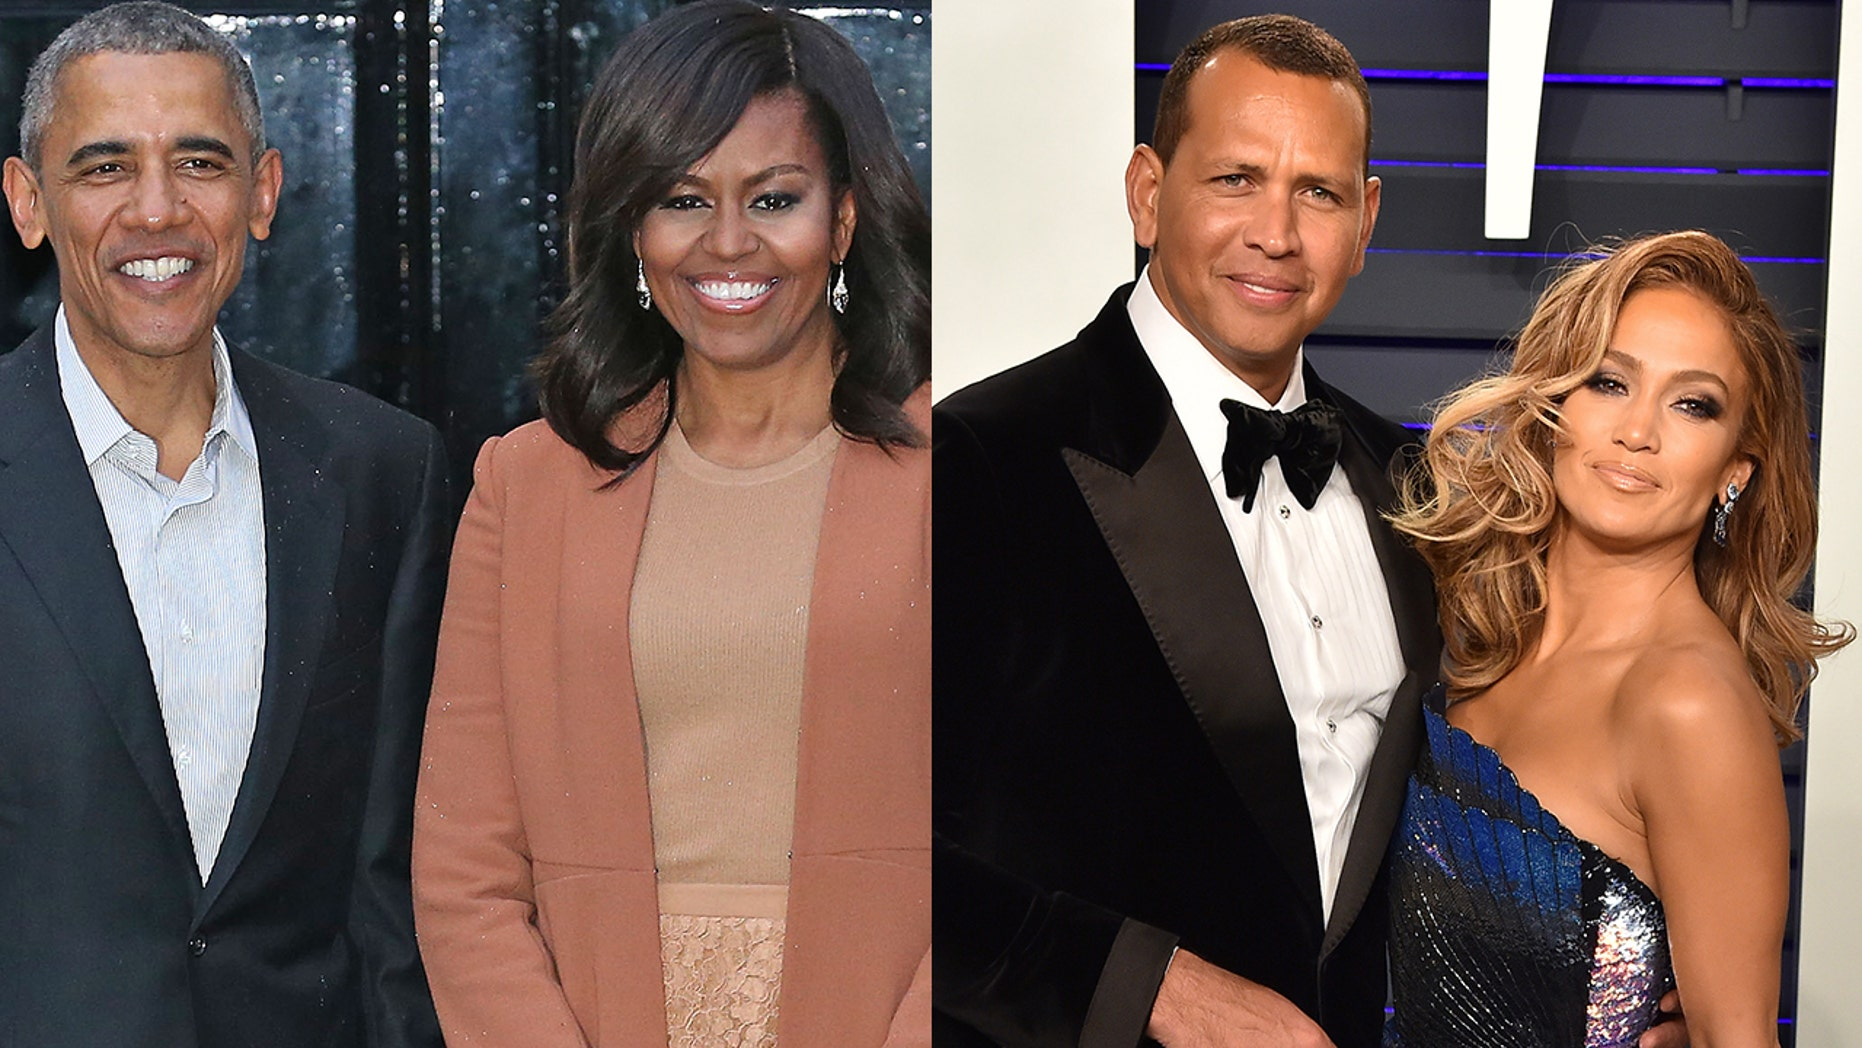 Alex Rodriguez shared a sweet note from the Obamas.